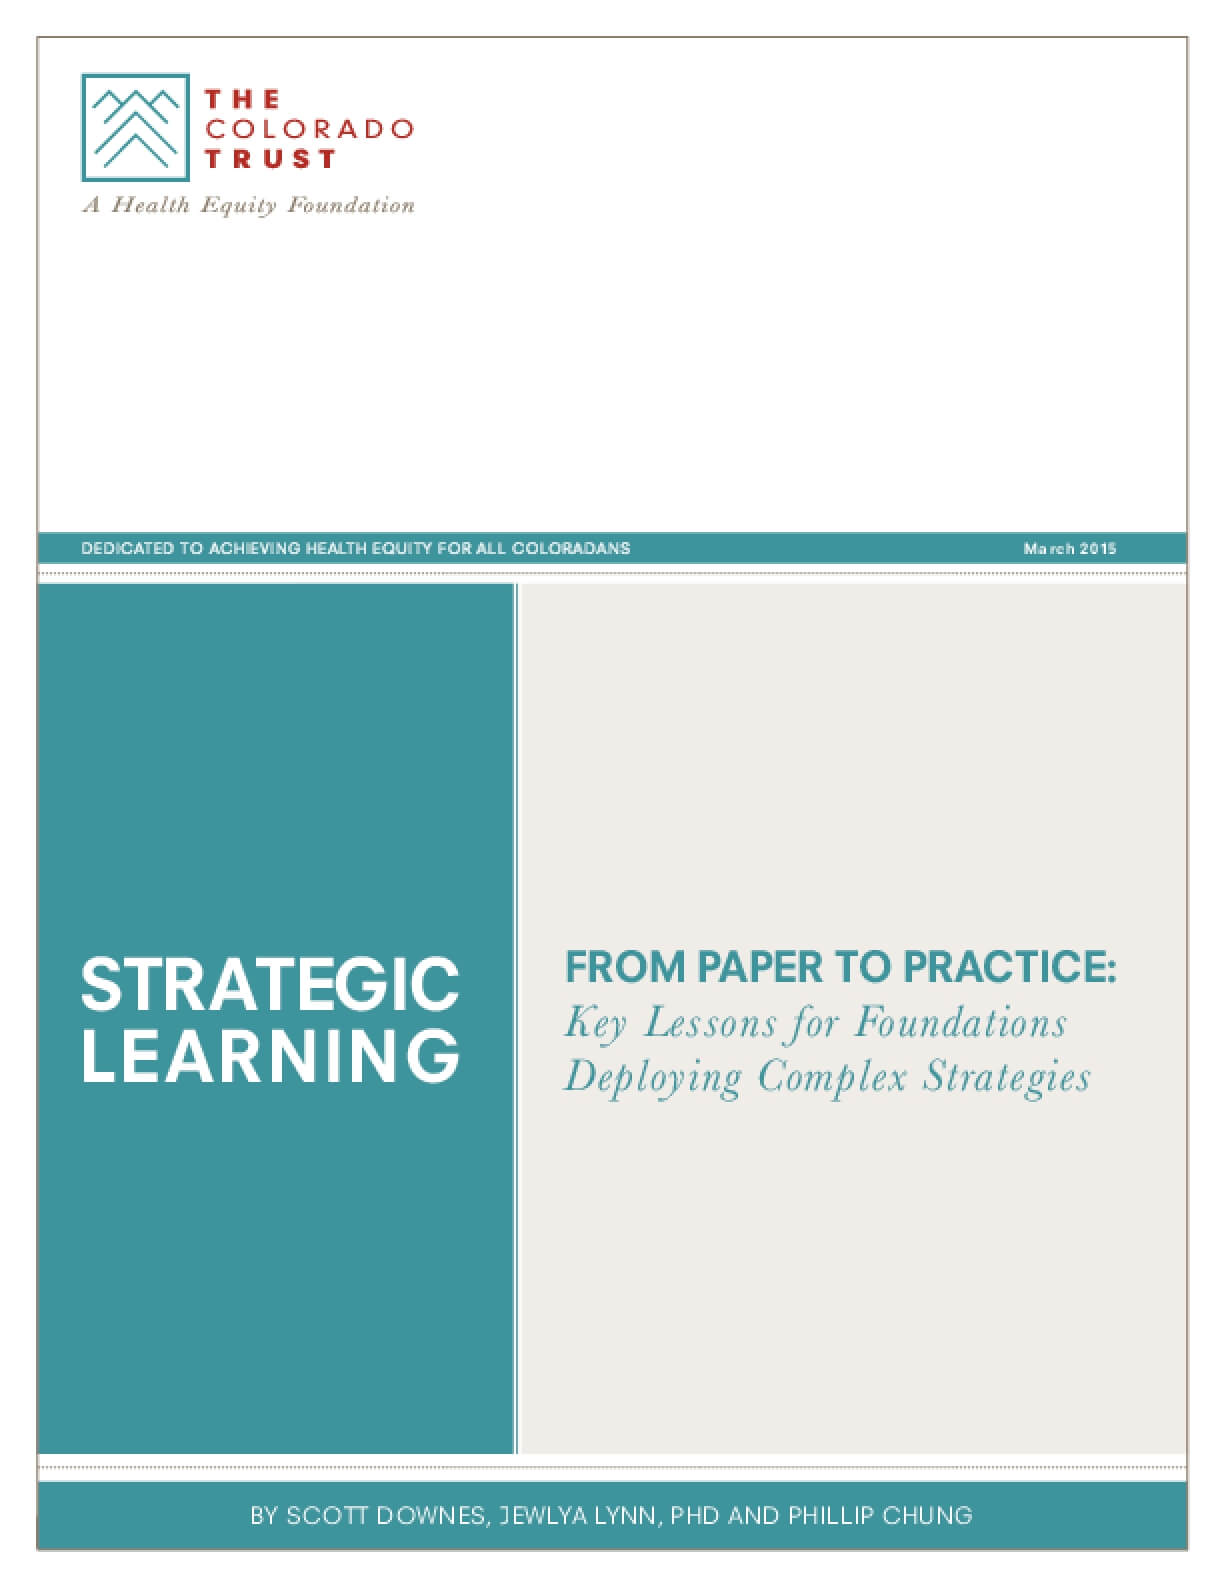 From Paper to Practice: Key Lessons for Foundations Deploying Complex Strategies